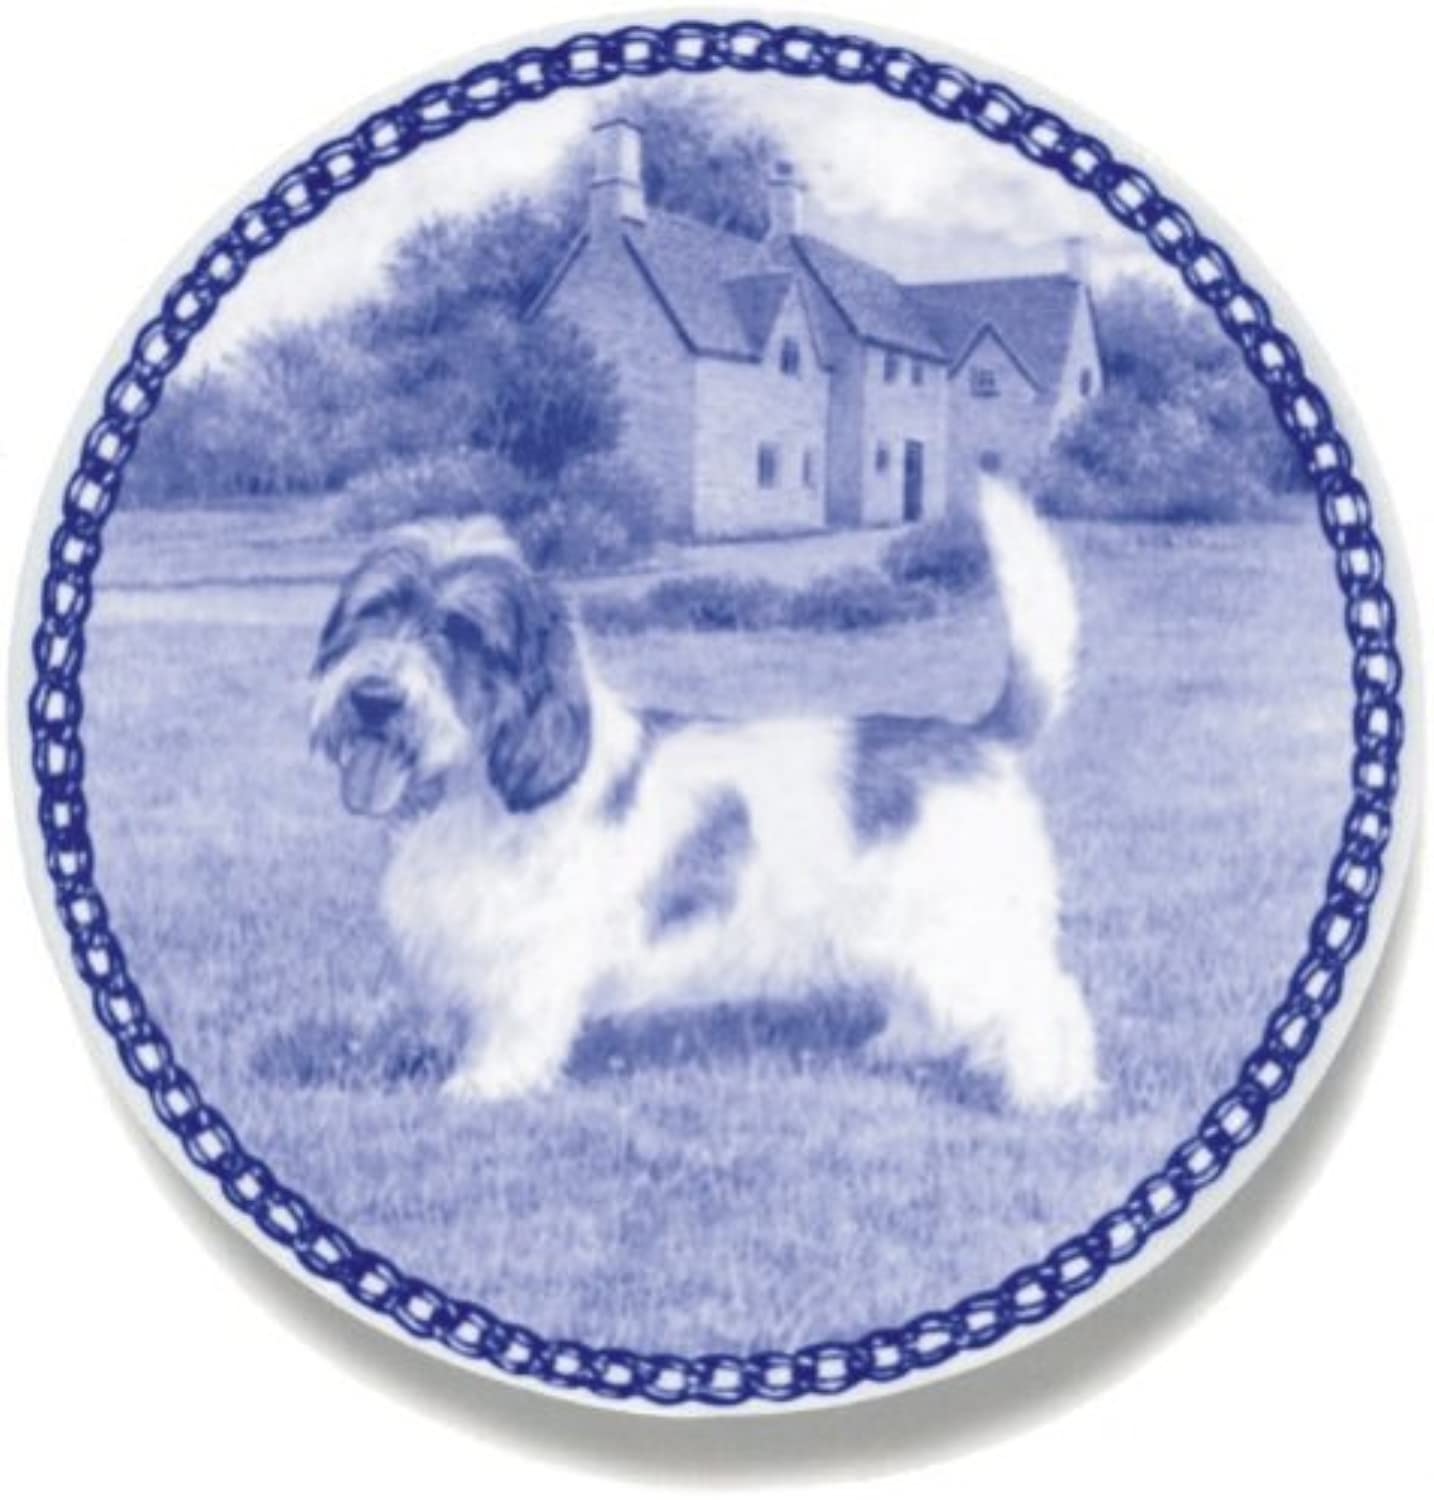 Petit Basset Griffon Vendeen Lekven Design Dog Plate 19.5 cm  7.61 inches Made in Denmark NEW with certificate of origin PLATE  7442